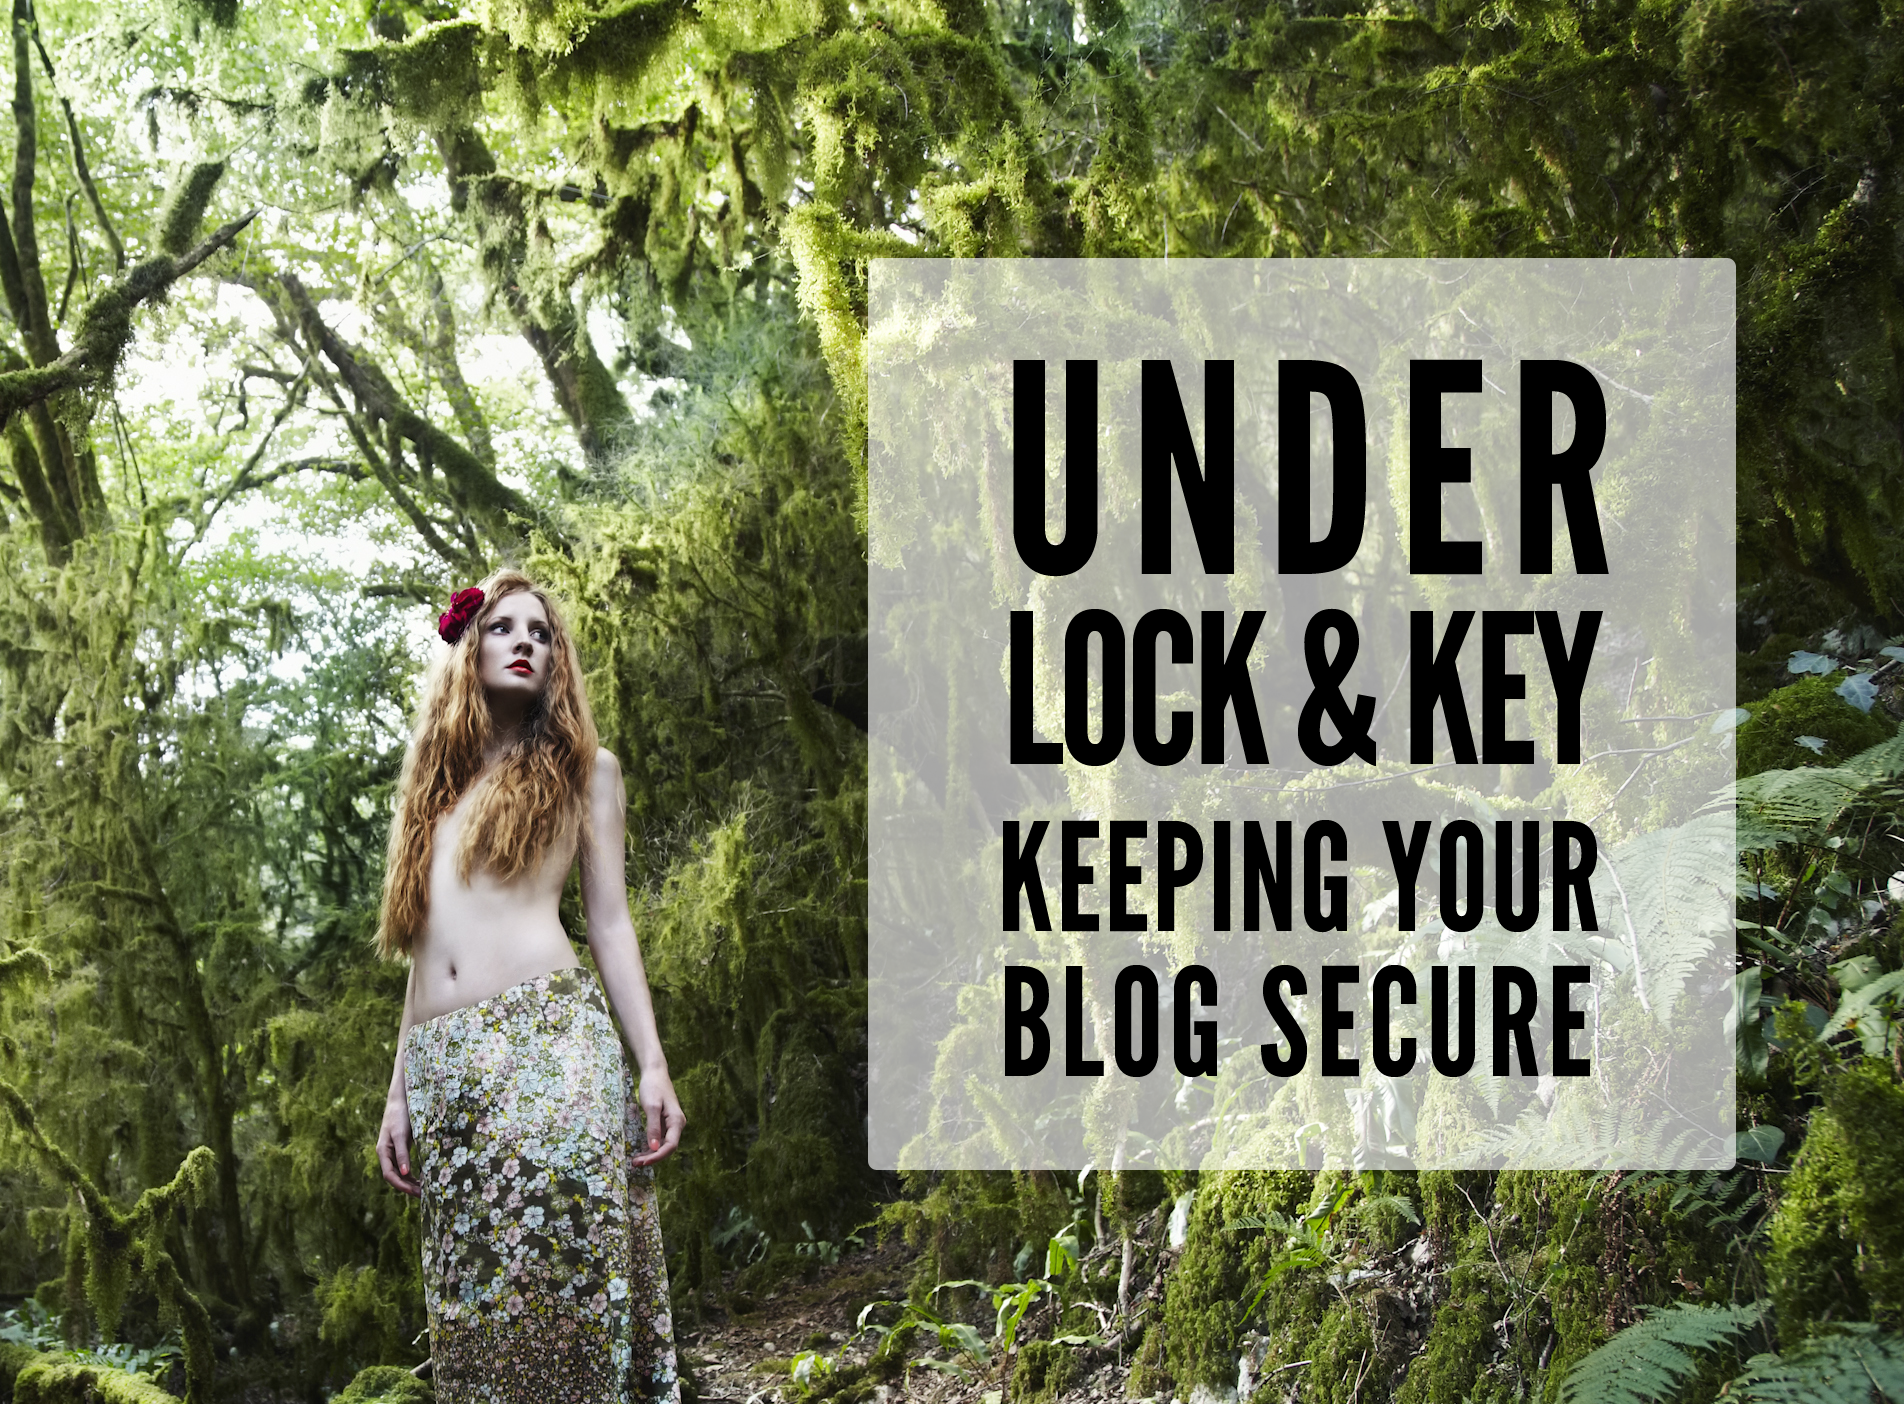 secure your blogs!!!!